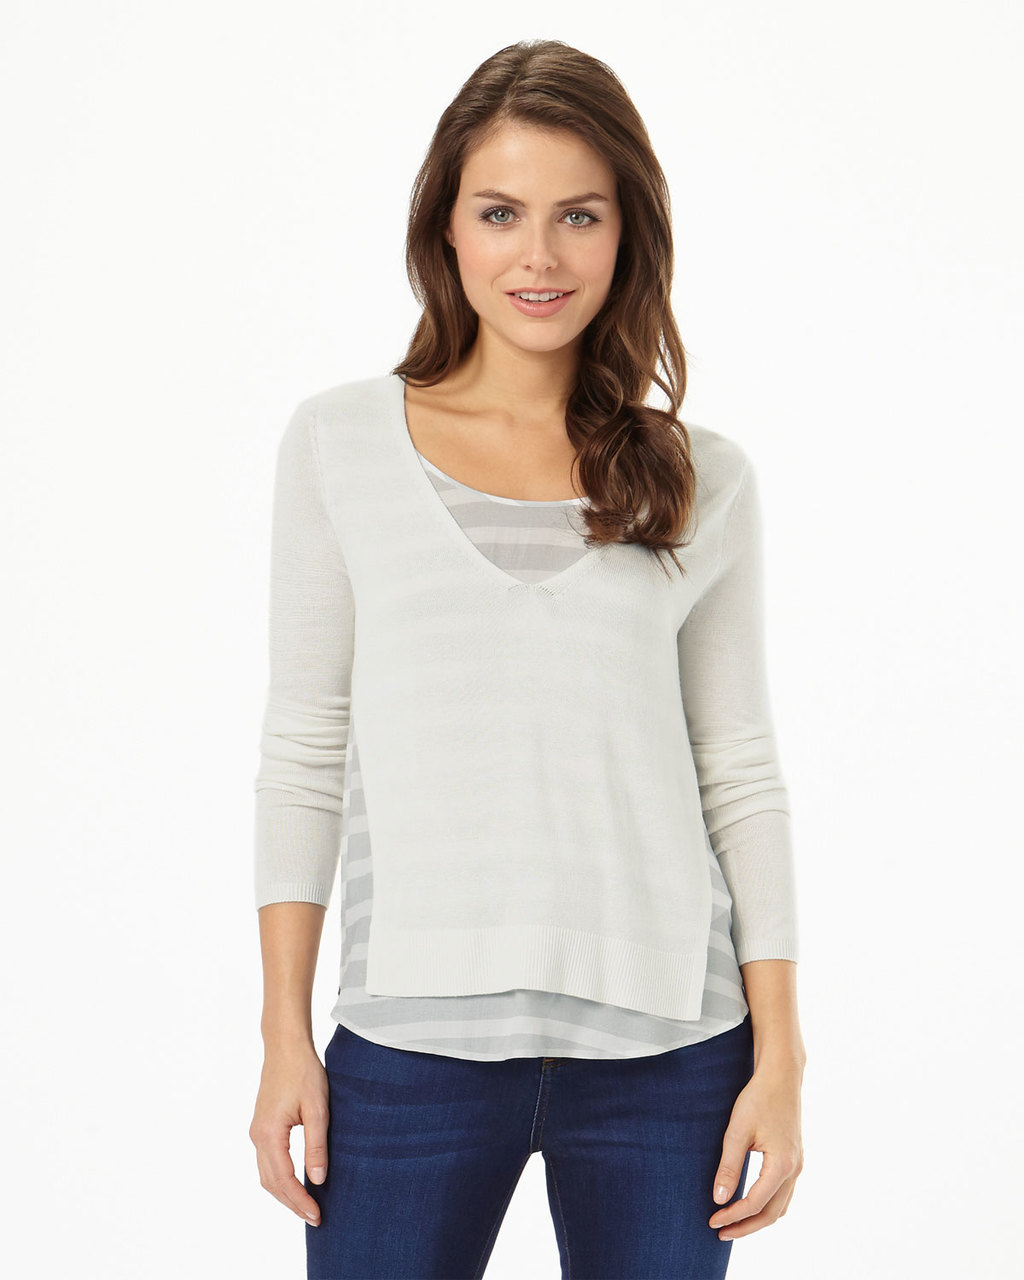 Alondra Stripe Knit - neckline: round neck; pattern: horizontal stripes; style: standard; predominant colour: ivory/cream; secondary colour: light grey; occasions: casual; length: standard; fibres: viscose/rayon - 100%; fit: slim fit; sleeve length: long sleeve; sleeve style: standard; texture group: knits/crochet; pattern type: fabric; multicoloured: multicoloured; season: s/s 2016